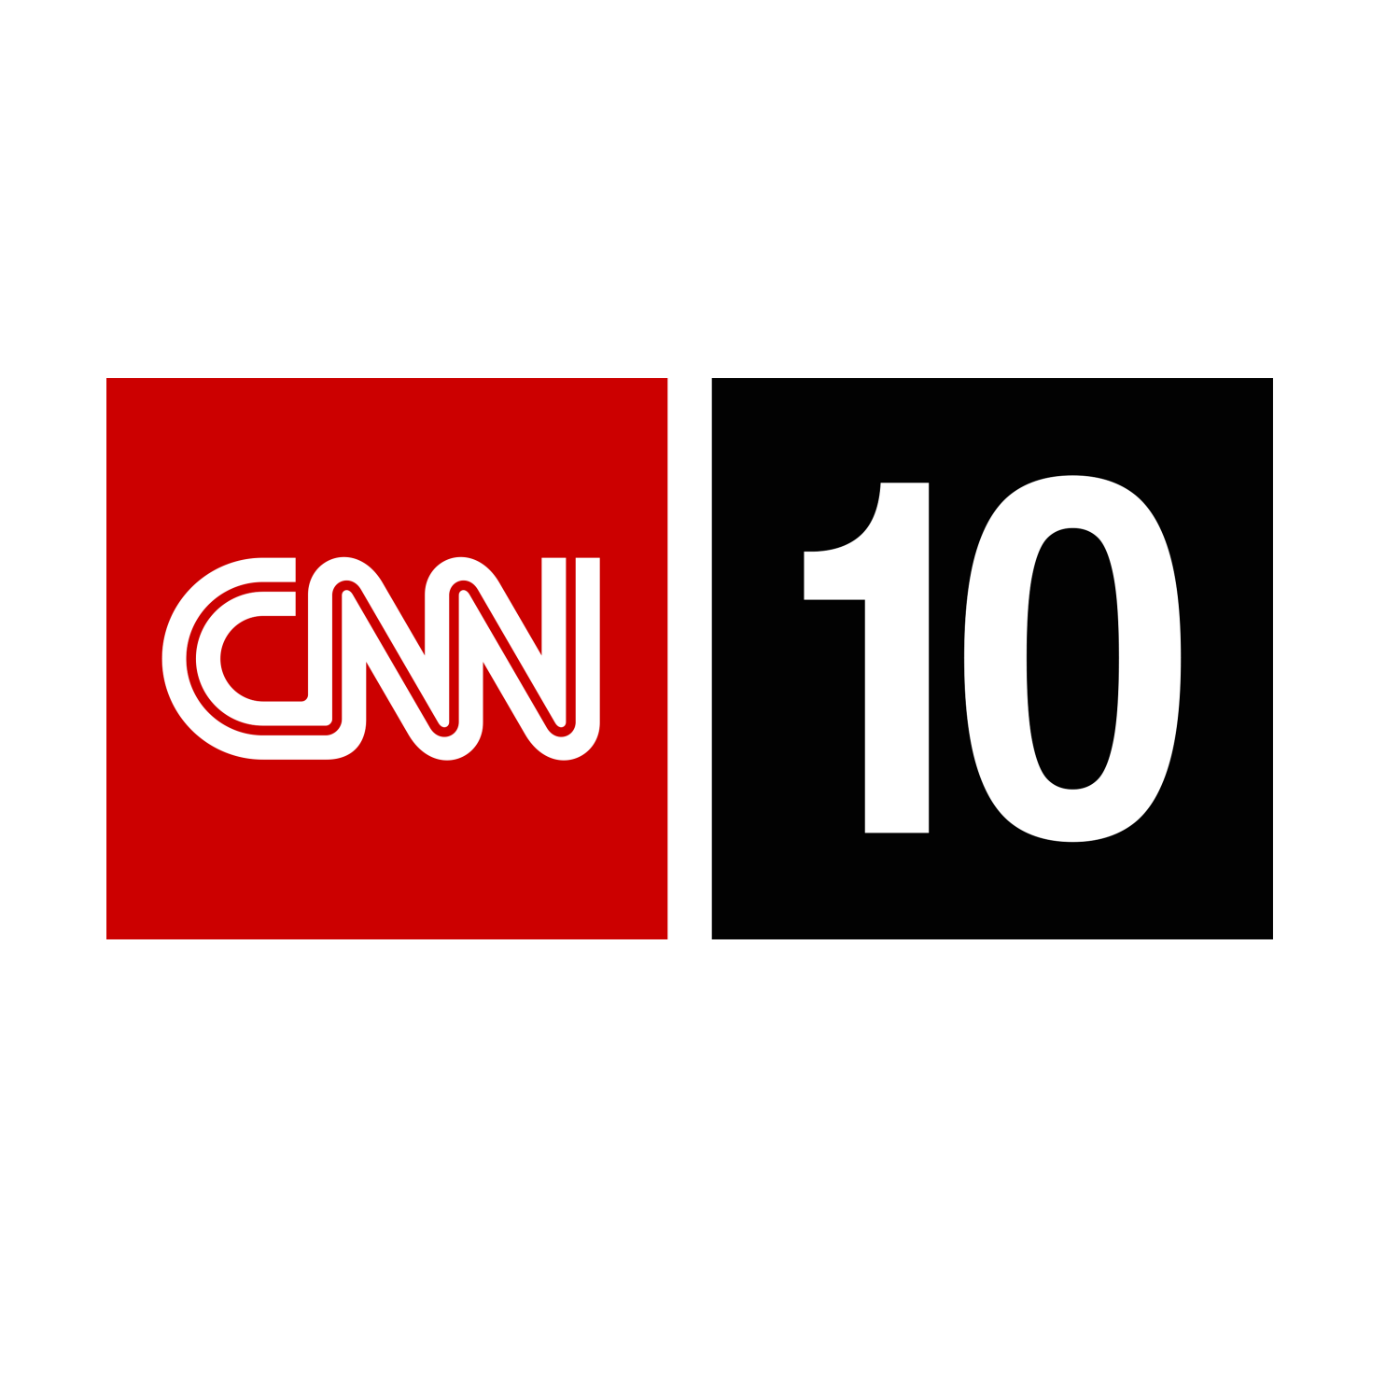 CNN Student News - October 9, 2012